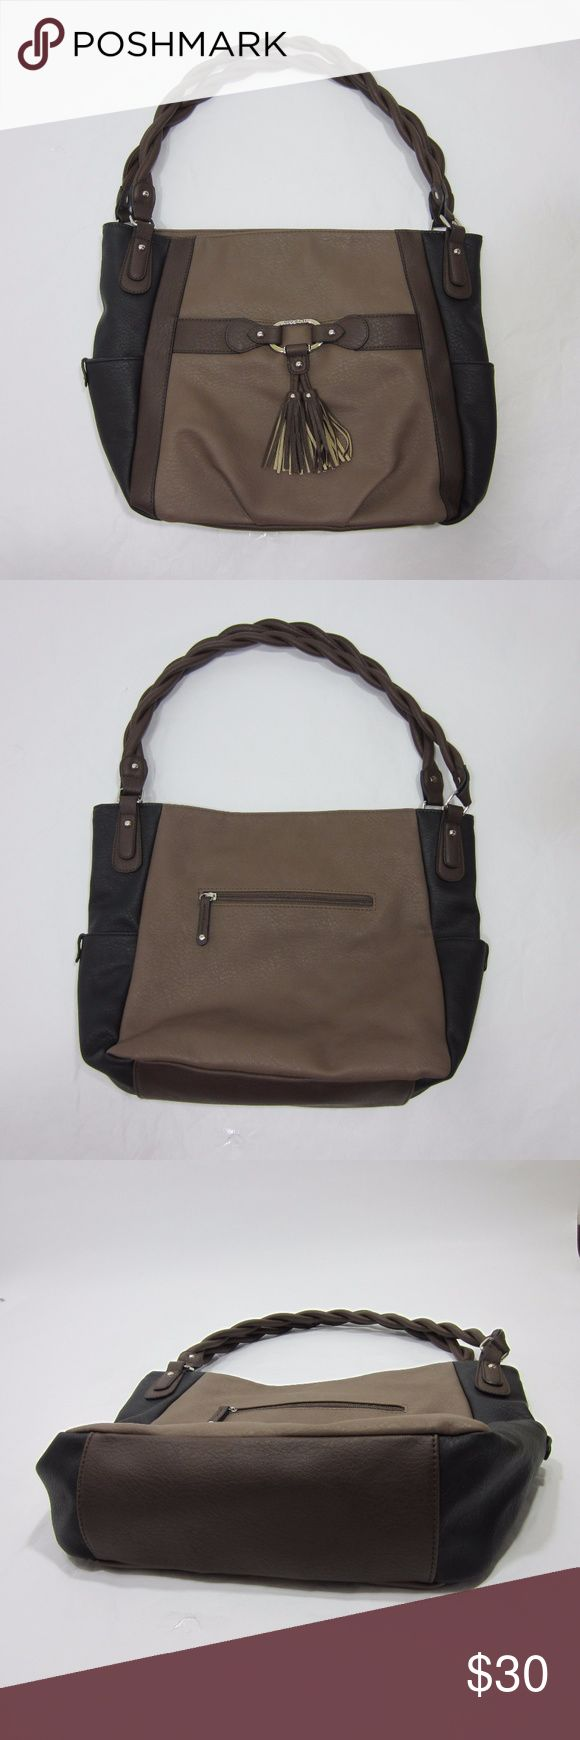 "Rosetti Large Two Tone Neutral Shoulder Bag Like new condition, no stains, rips, or pilling. Great shoulder bag with twisted handle detail and lots of pockets! Three exterior and two large inside compartments with two zippered pockets. Very versatile bag! [Size ""large"" 15"" x 11"" x 4""] Brown and black. Silver hardware w/ tassels. Brown and black.  // No holds, trades, or modeling. Colors may vary on screen. Please use measurements. Offers welcome.   *Last characters in title is inventory…"